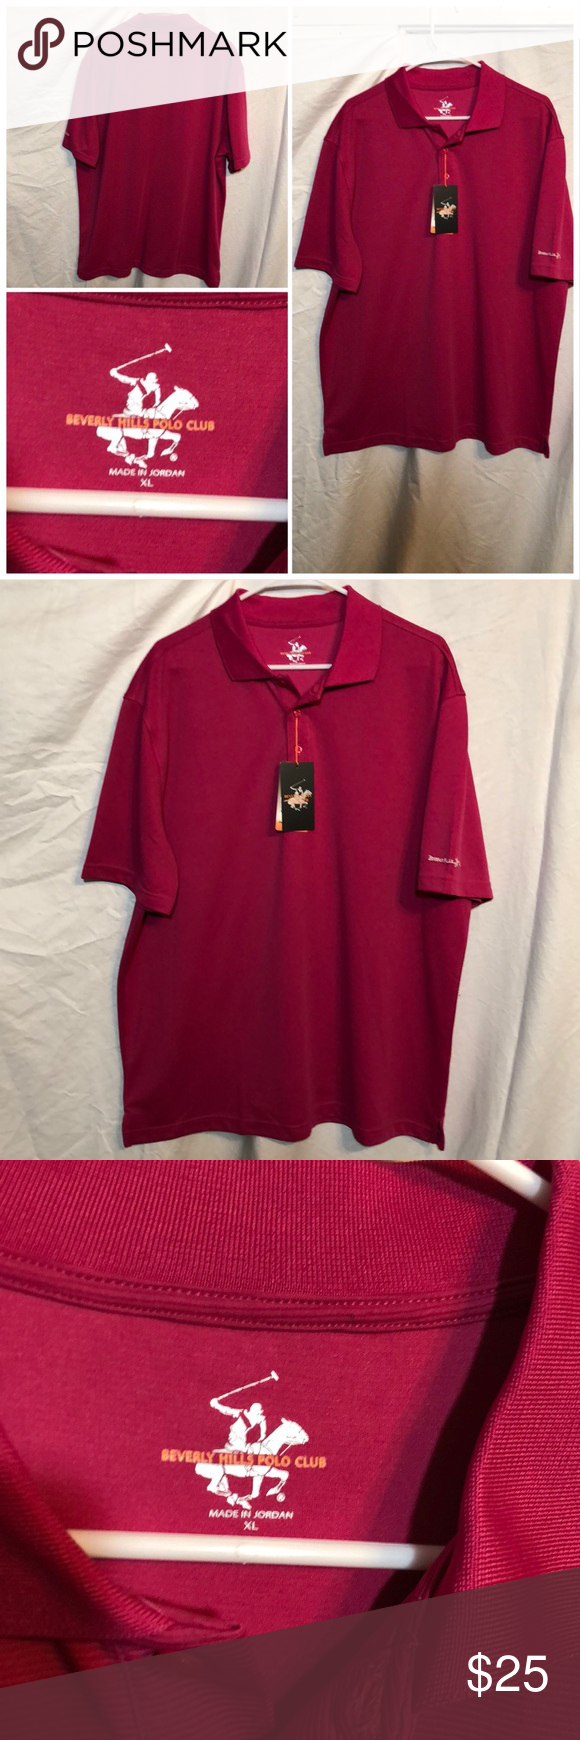 Beverly Hills Polo Club Polo Size Xl Beverly Hills Polo Club Polo Club Performance Wear